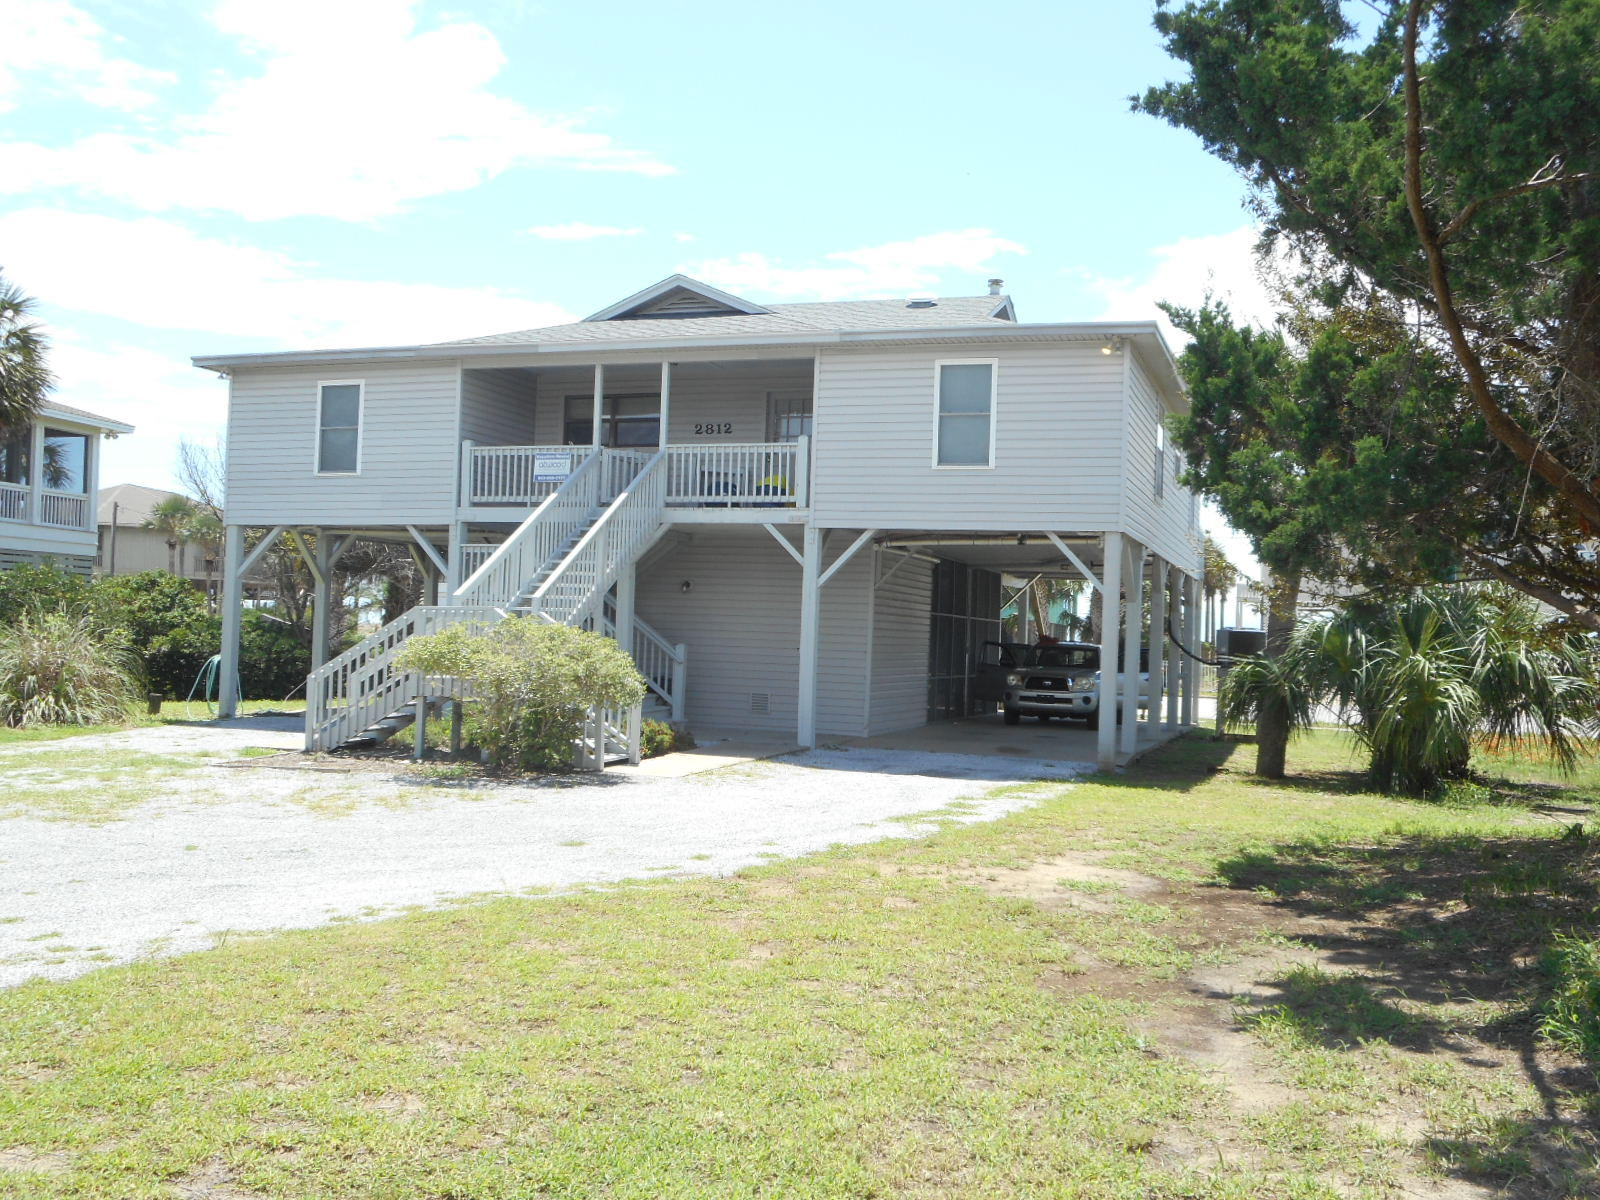 Photo of 2812 Palmetto Blvd, Edisto Island, SC 29438